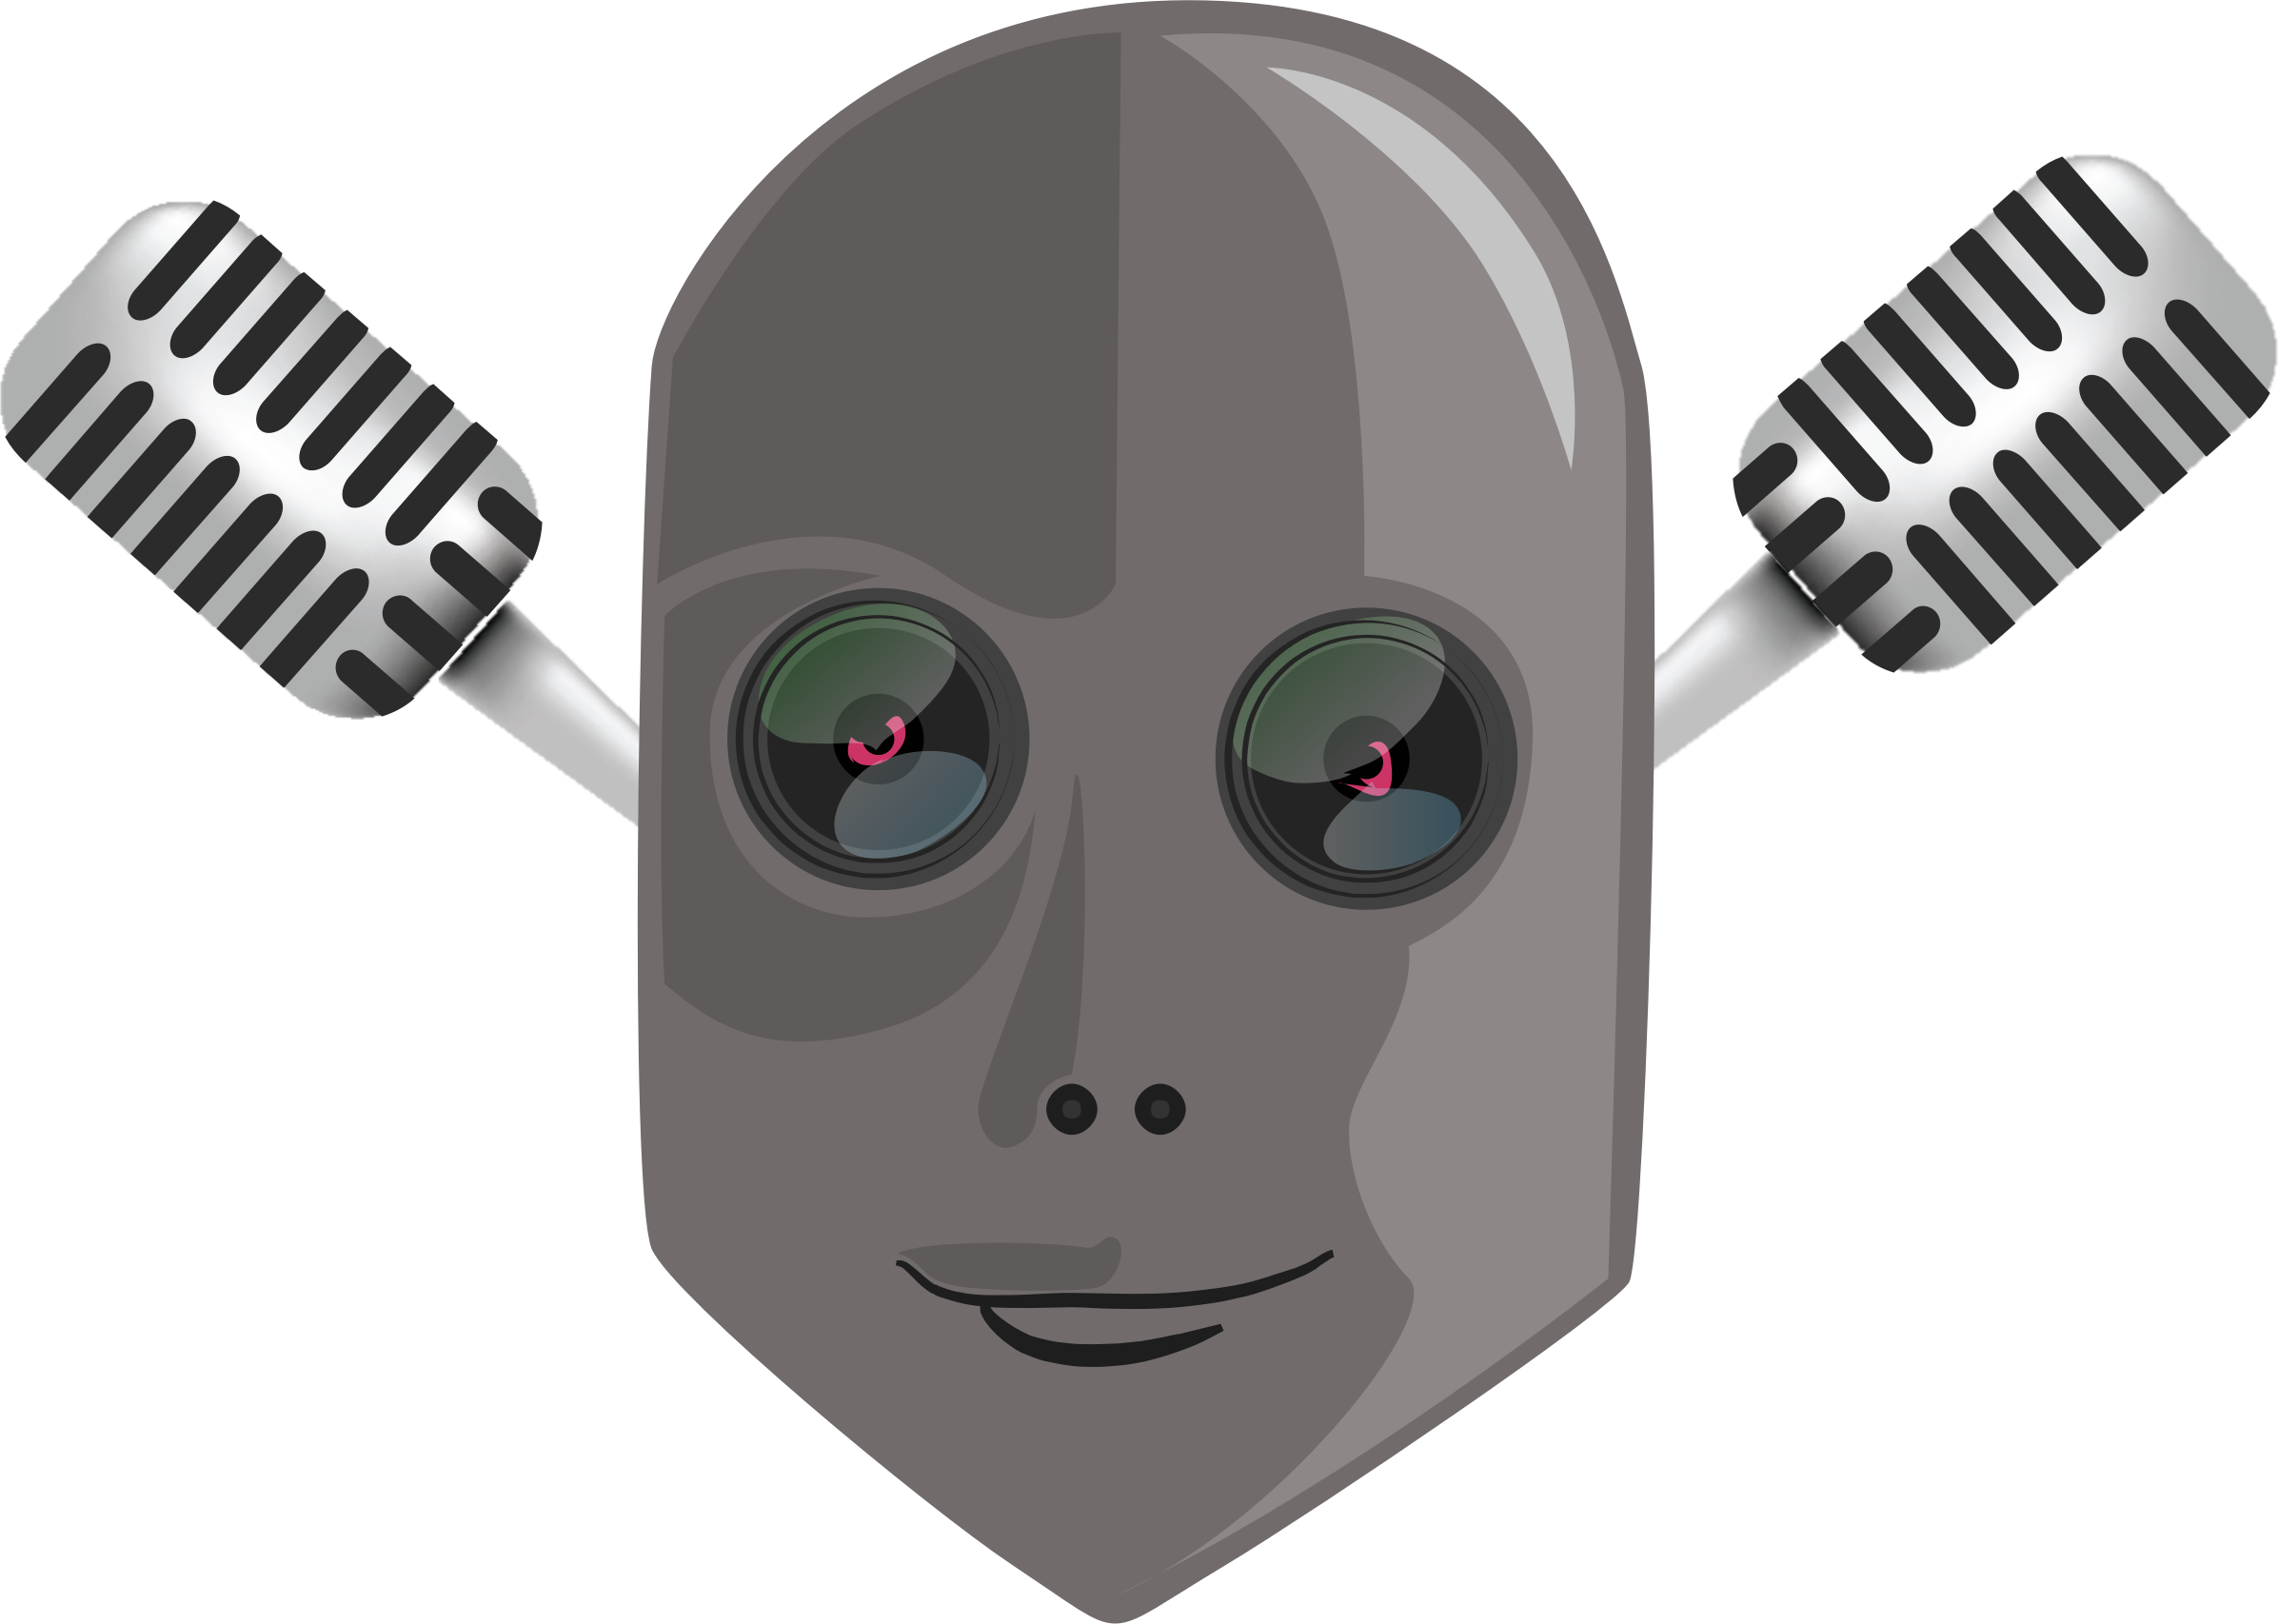 Robot head by nefigcas